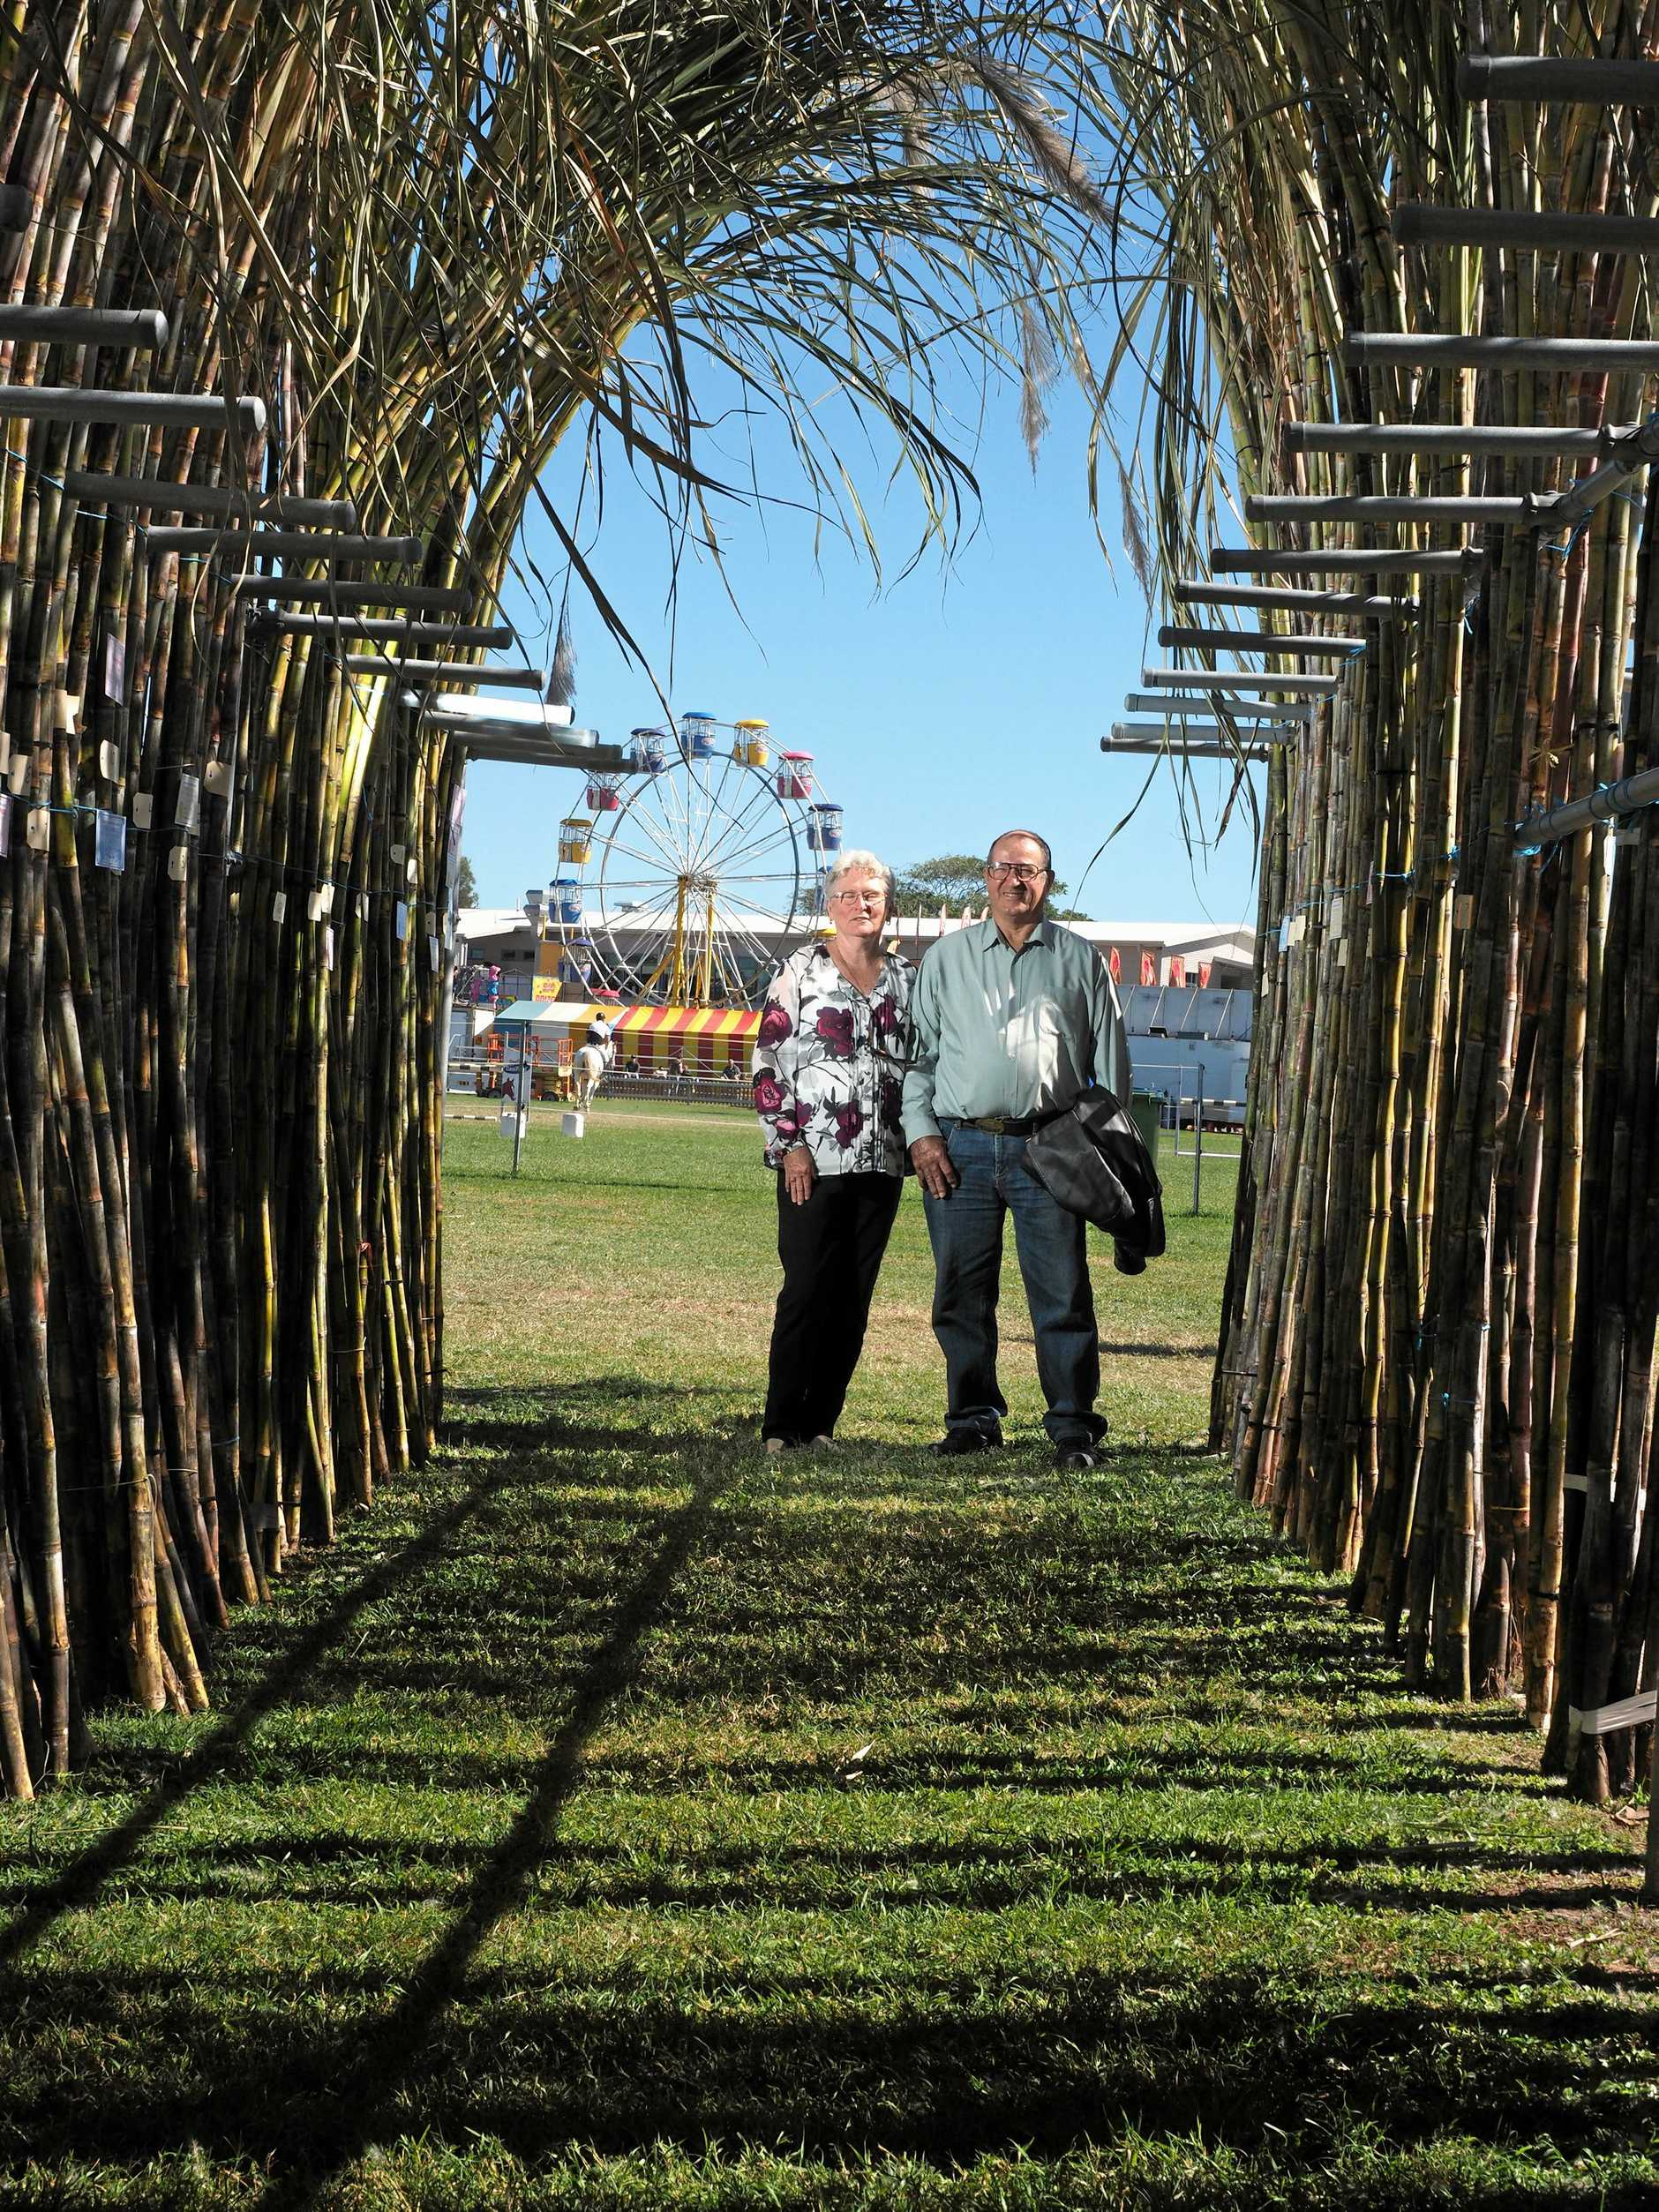 Former Coningsby cane growers Carol and Jim Hamilton at the Mackay Show 2019.